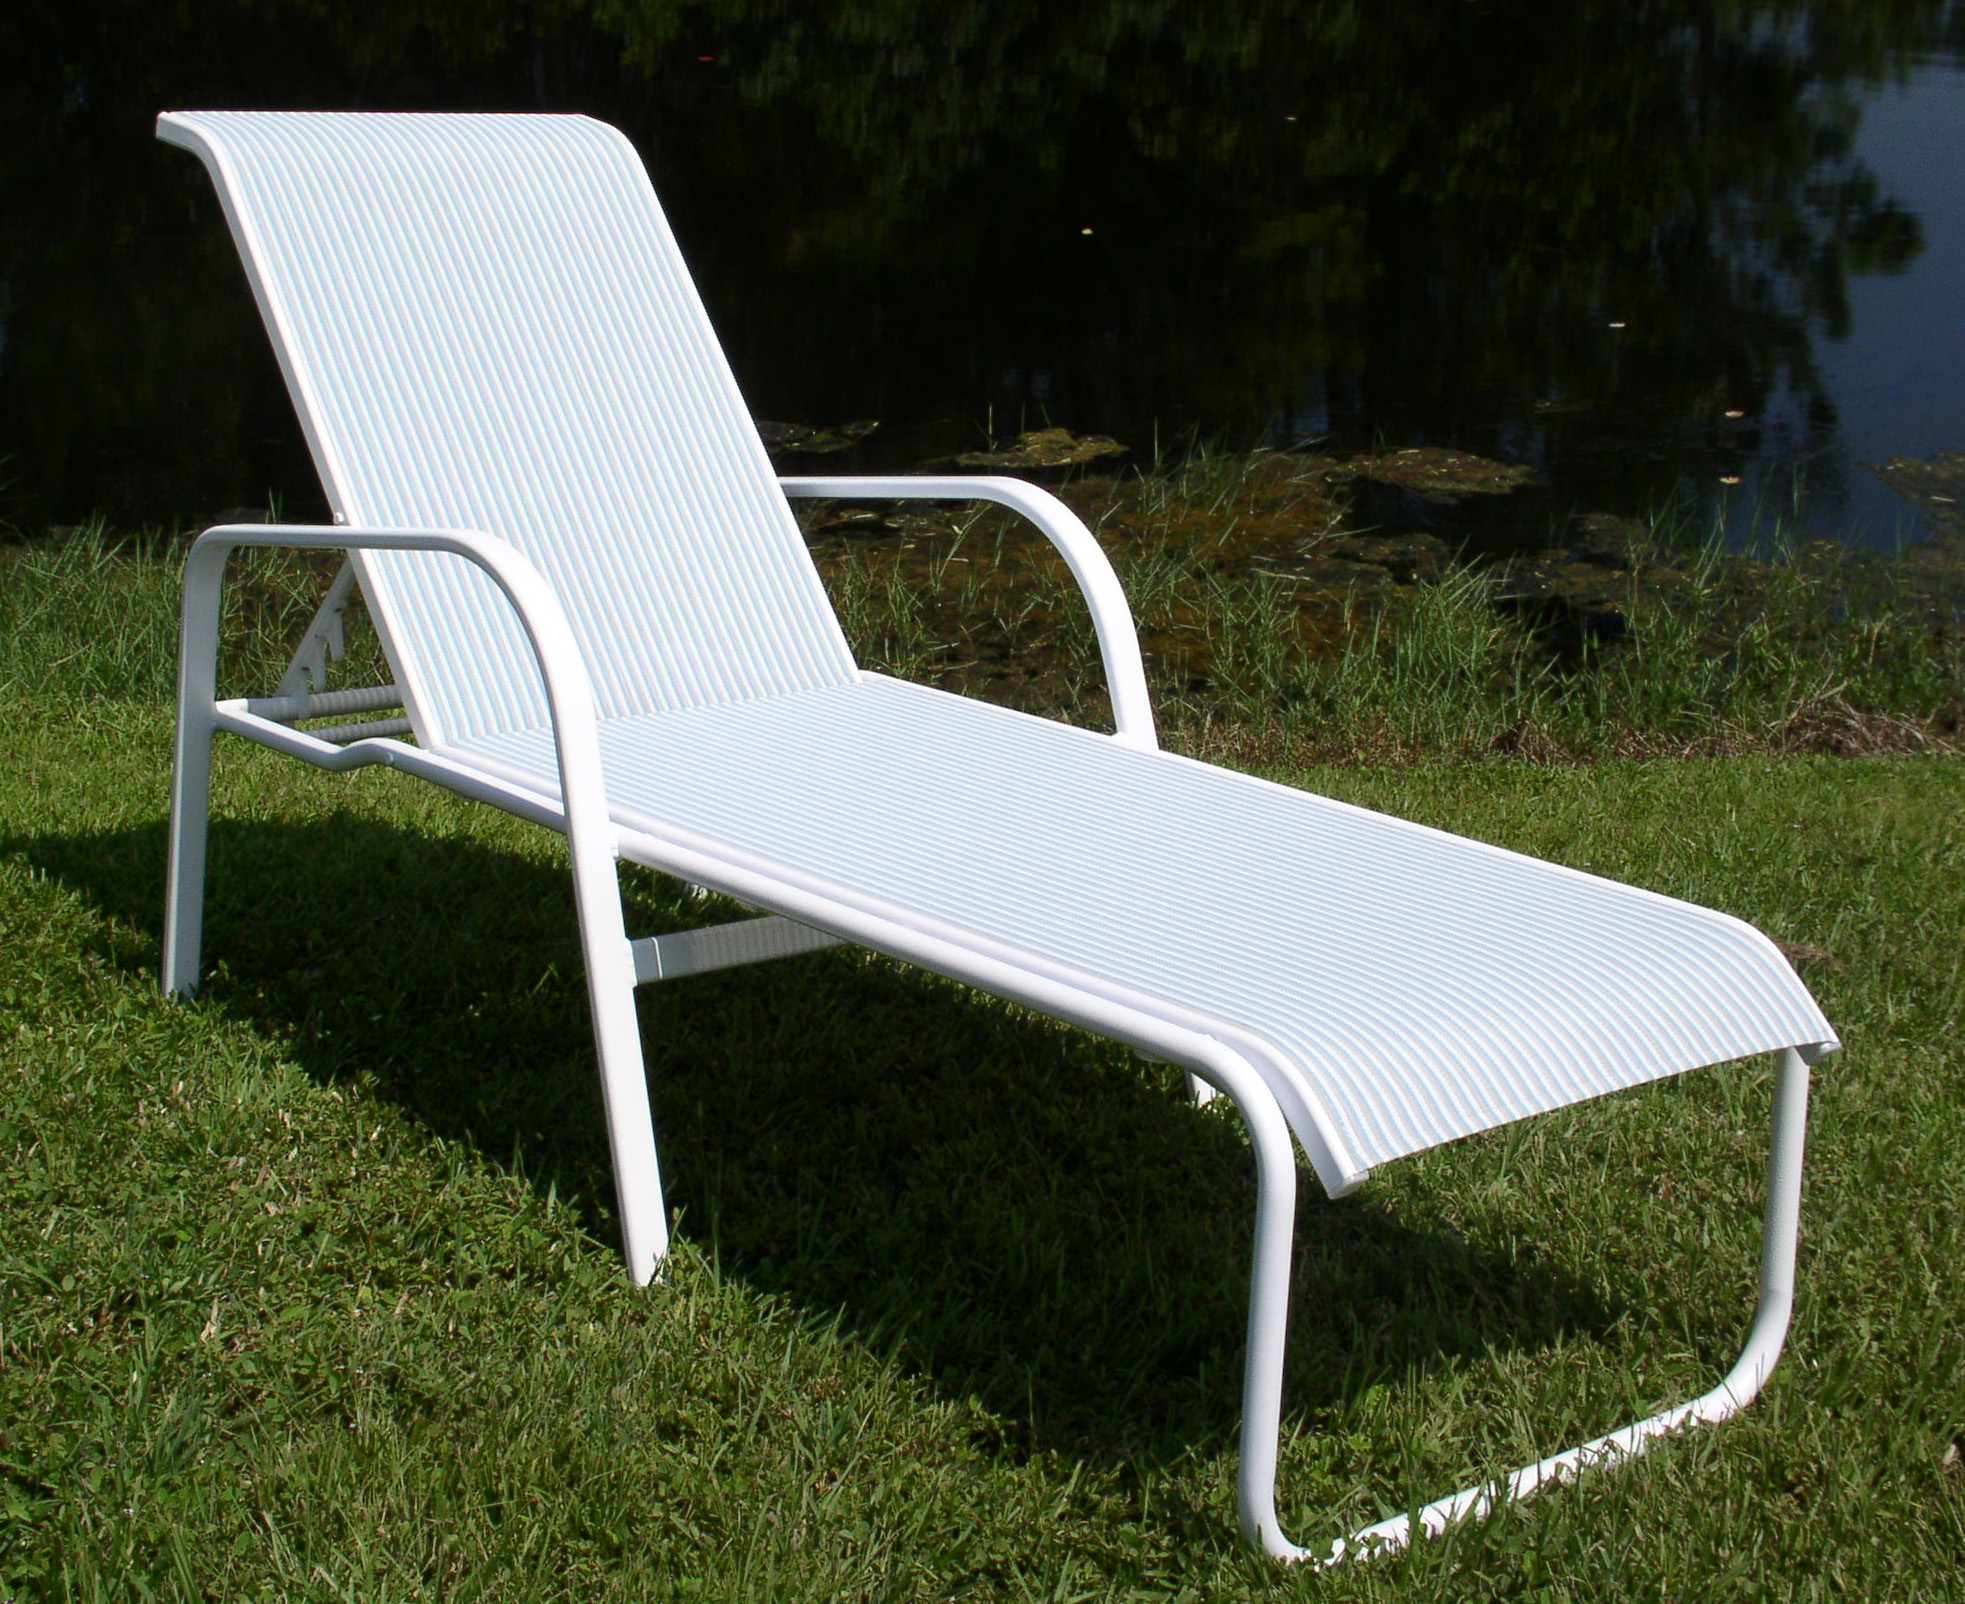 Marvelous Seat Ocean Breeze Aluminum Sling Chaise Lounge Chair W/ Arms  MOST  ECONOMICAL